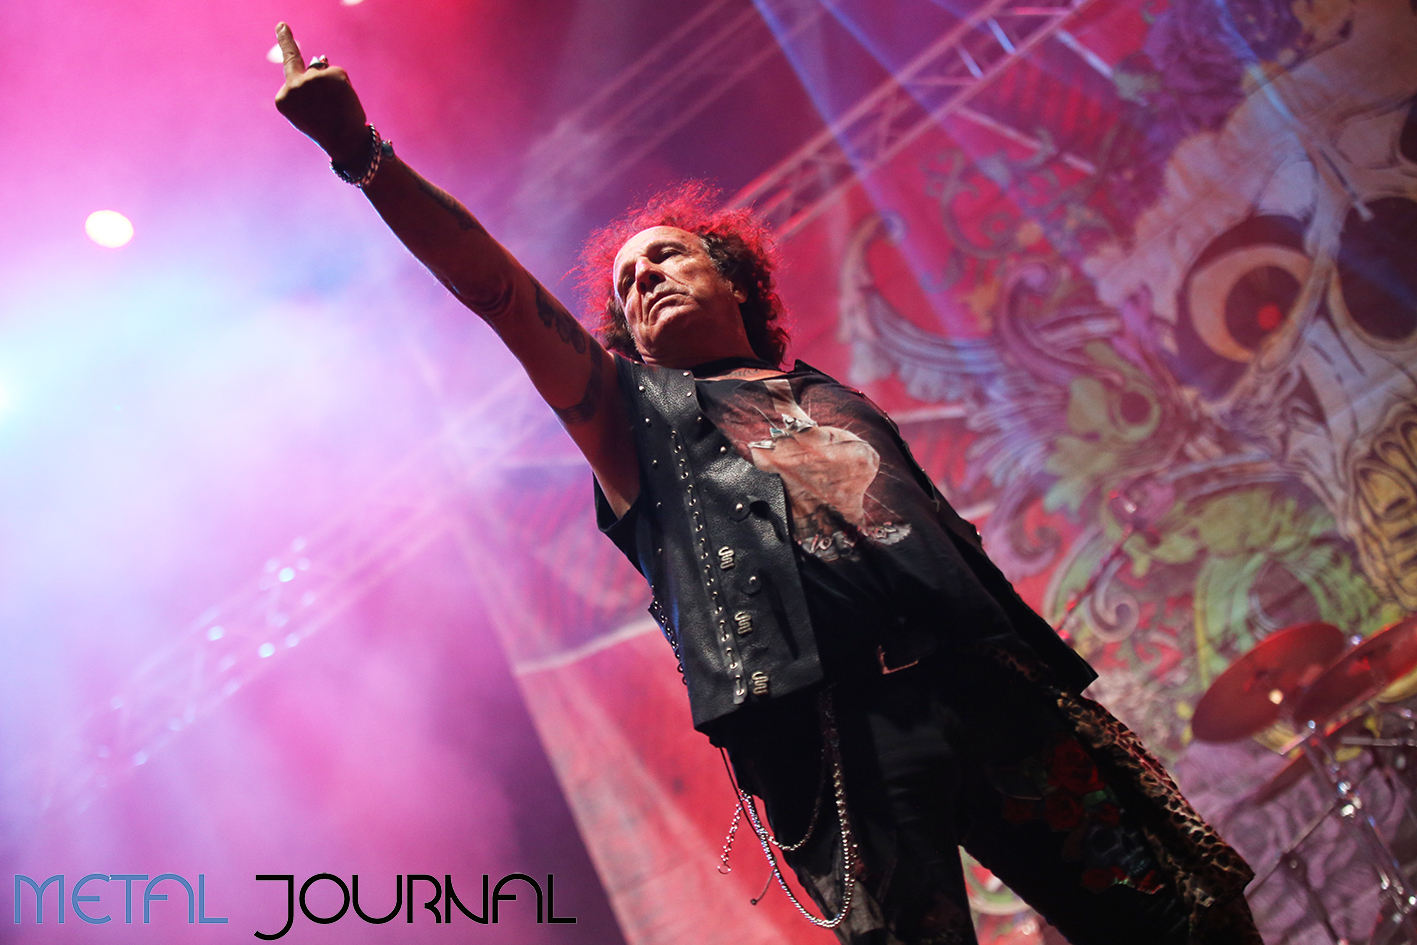 obus - leyendas del rock 2019 metal journal pic 4